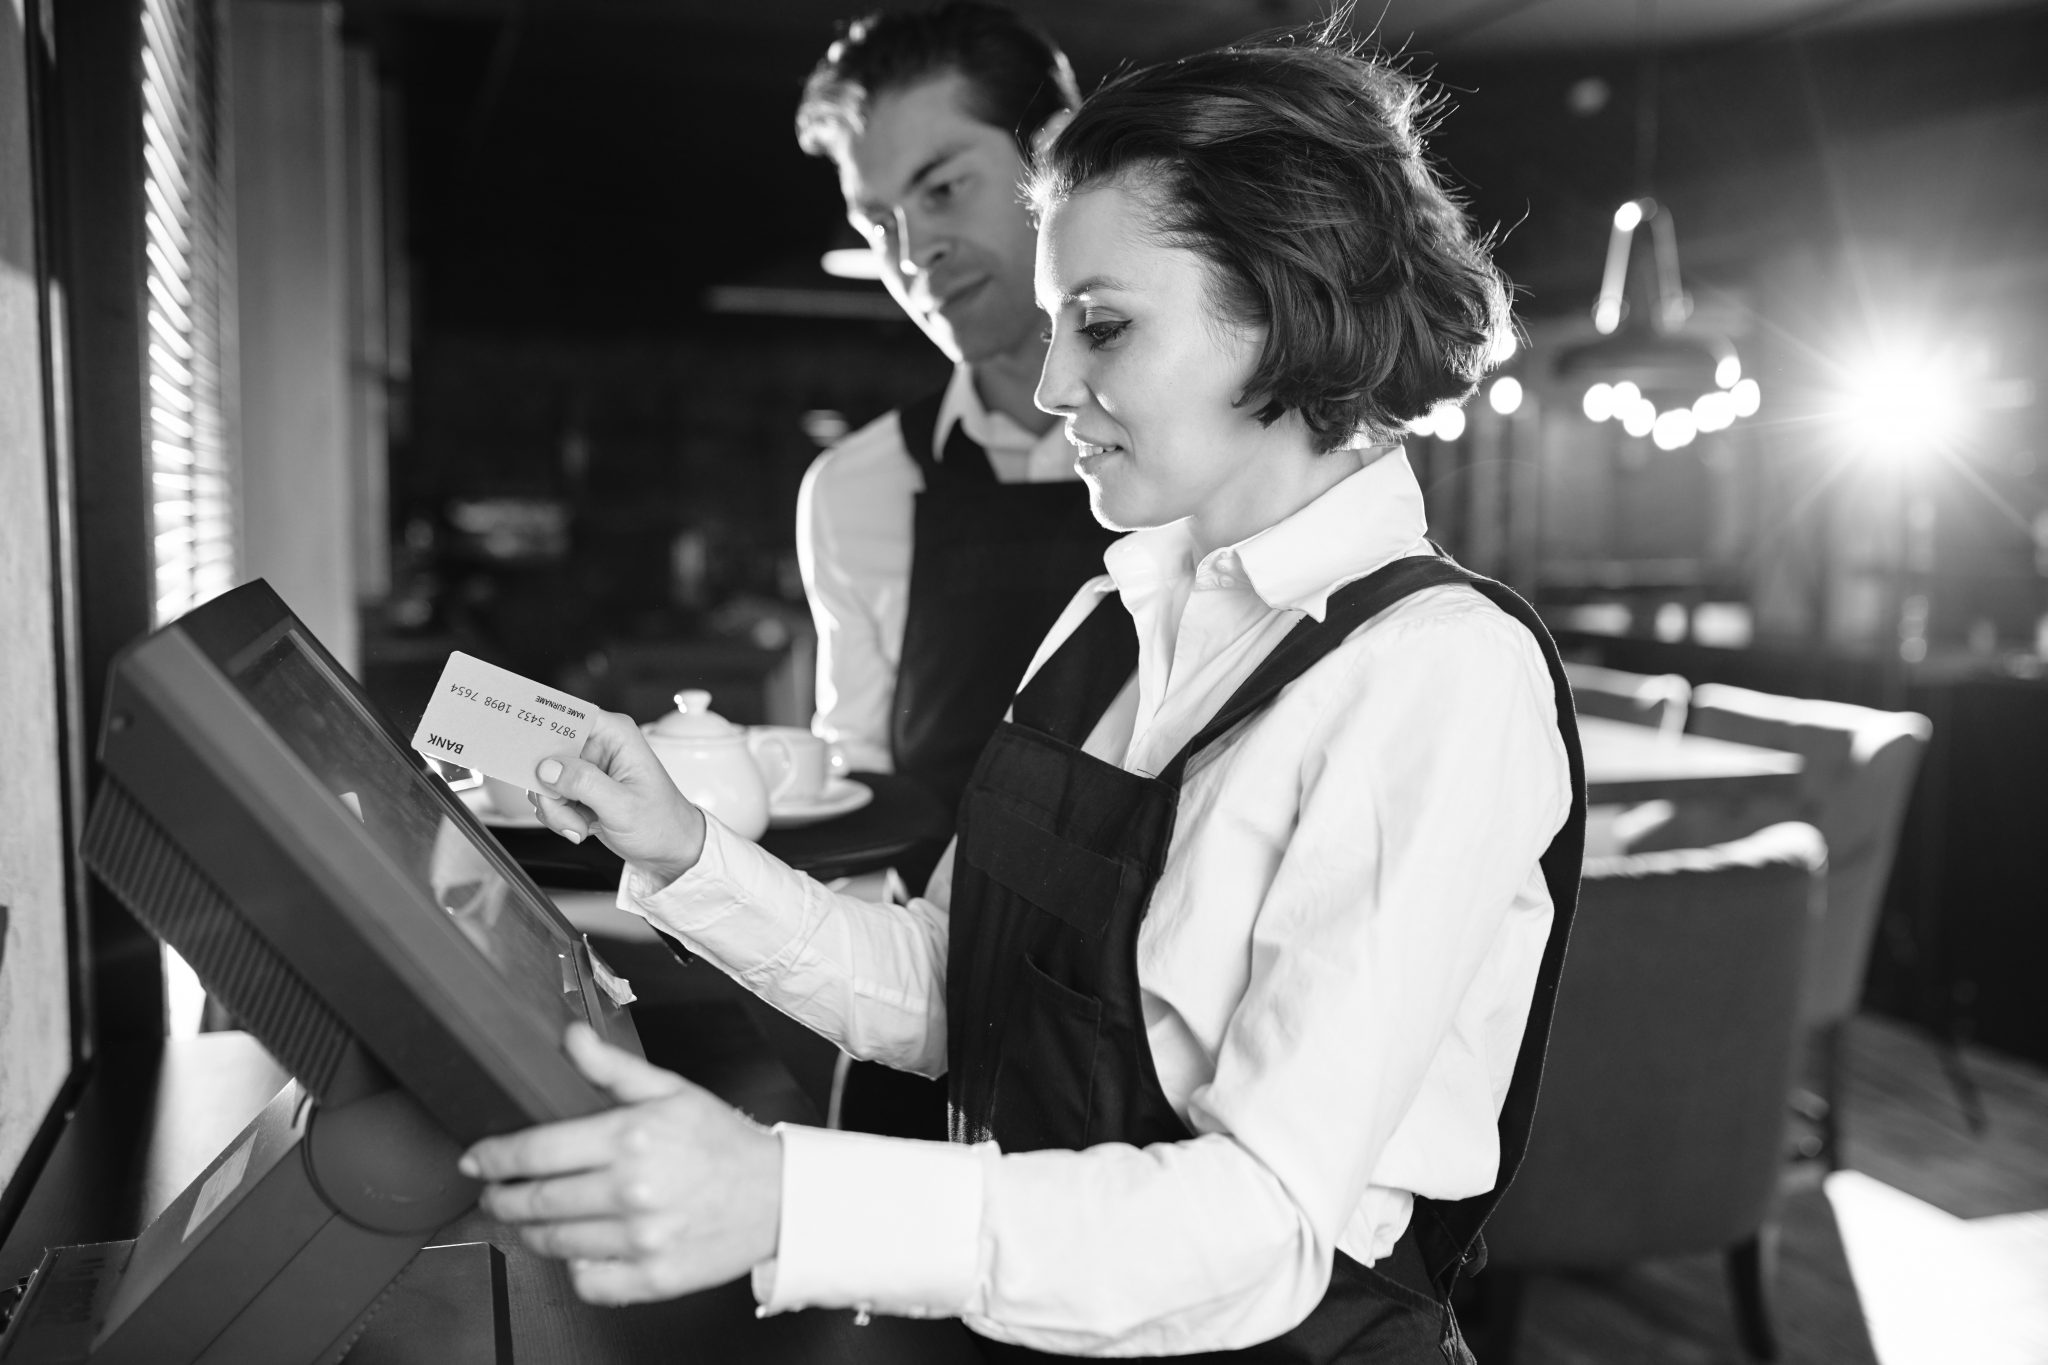 Image of waitress using POS terminal